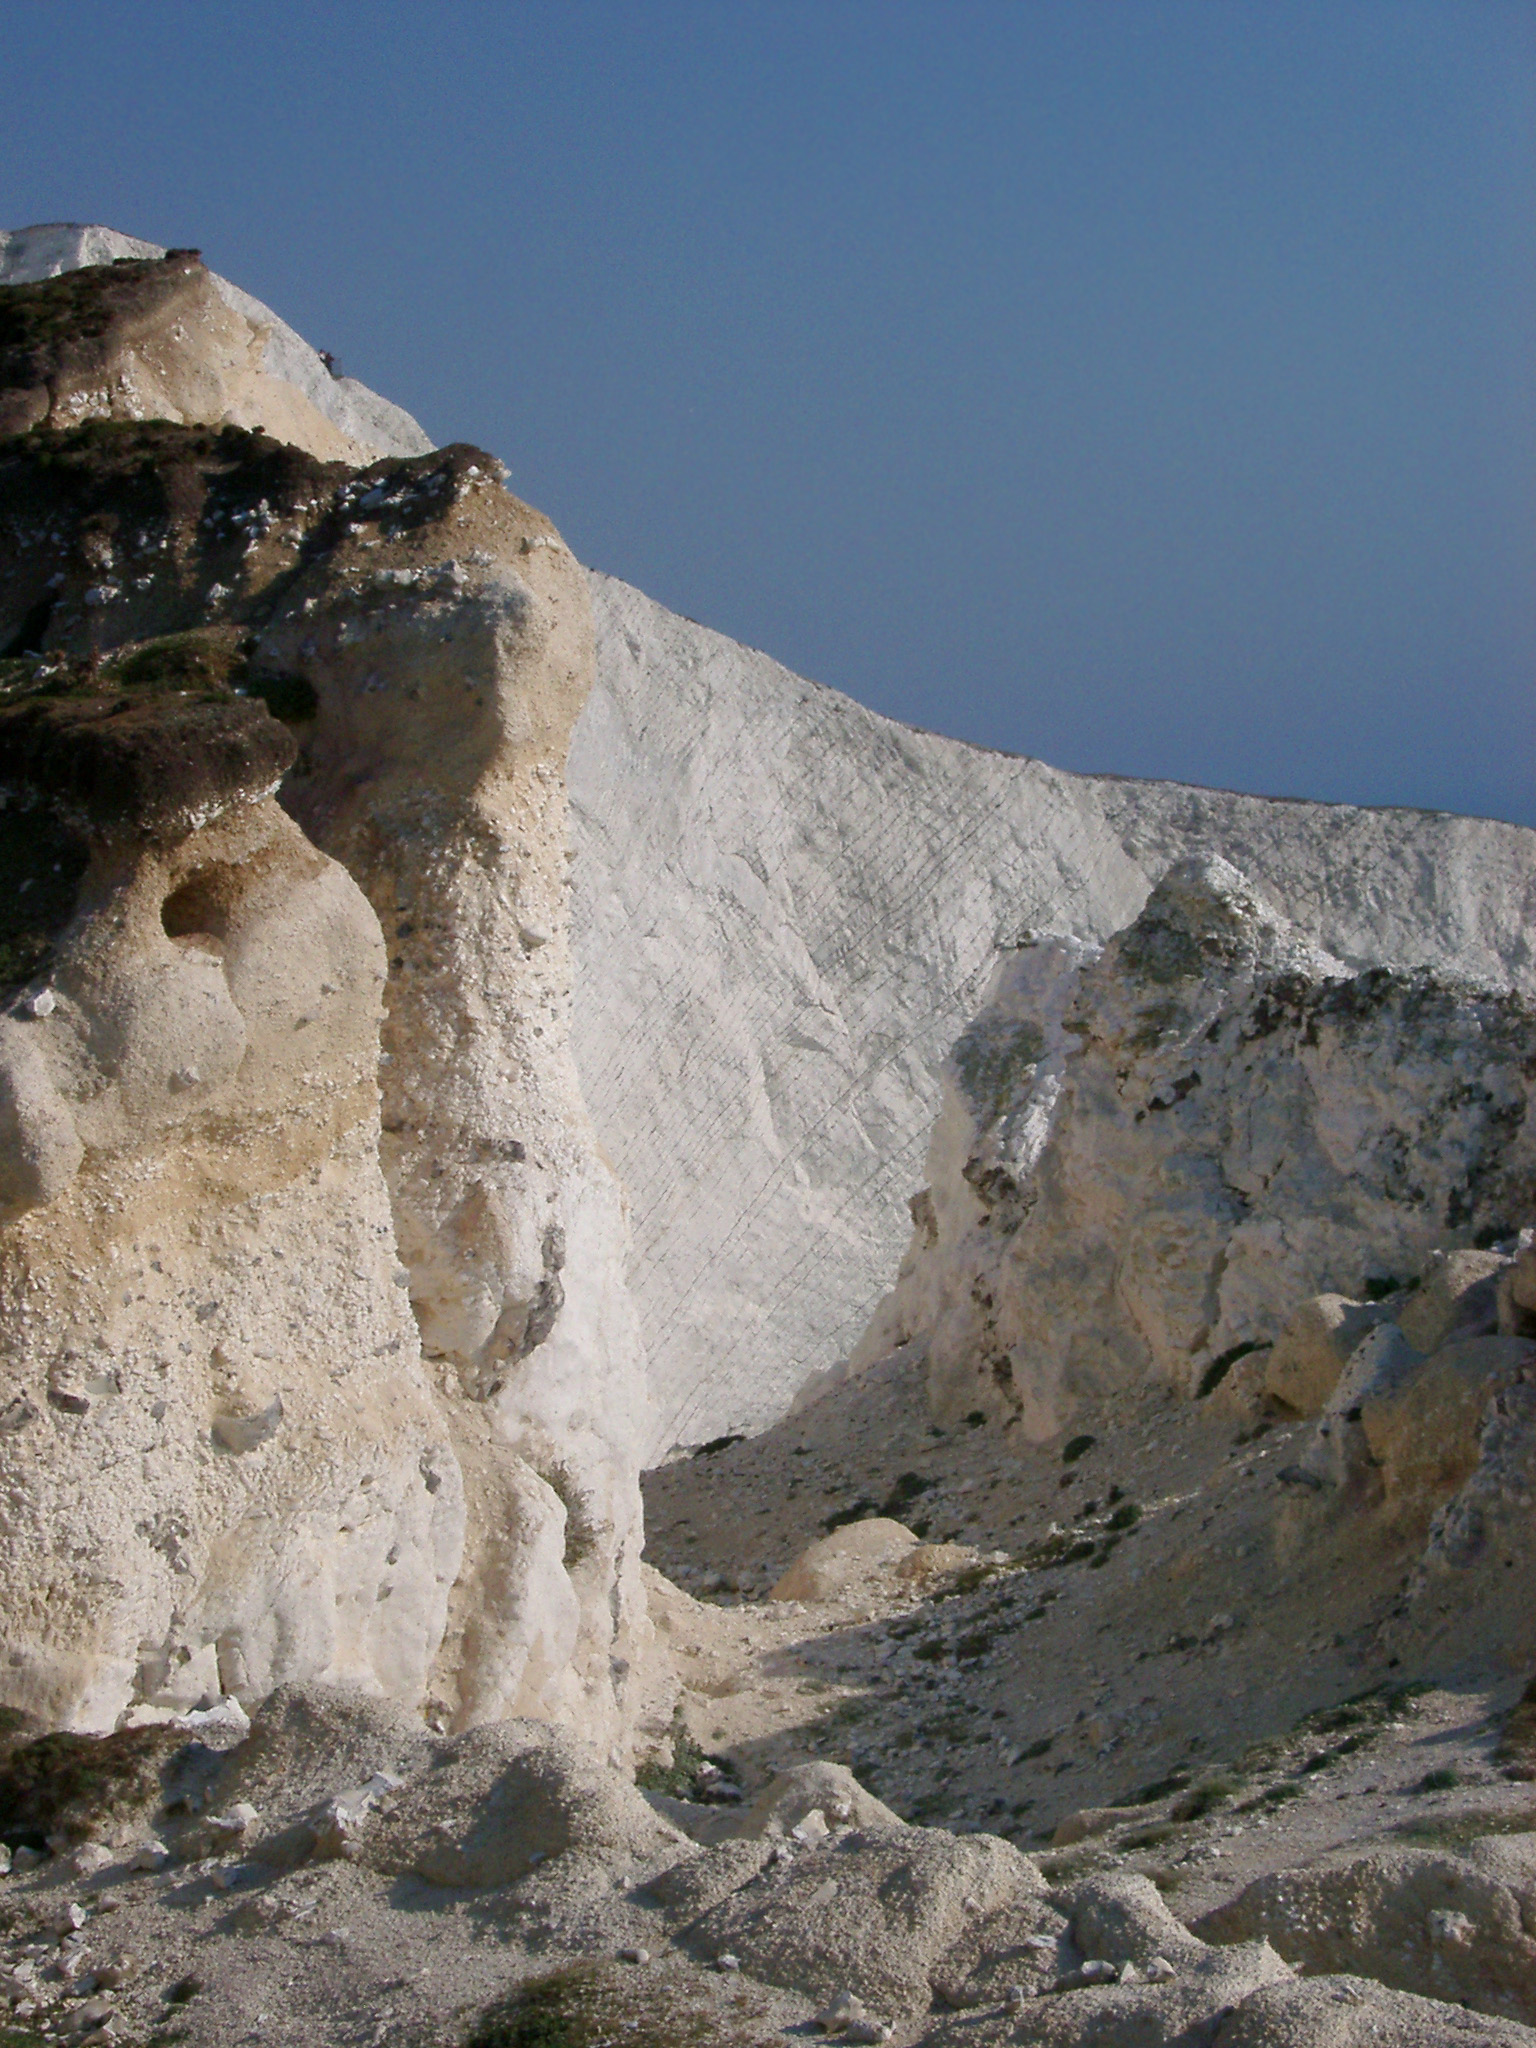 Eroded chalk cliffs showing evidence of landslip on the Isle of Wight